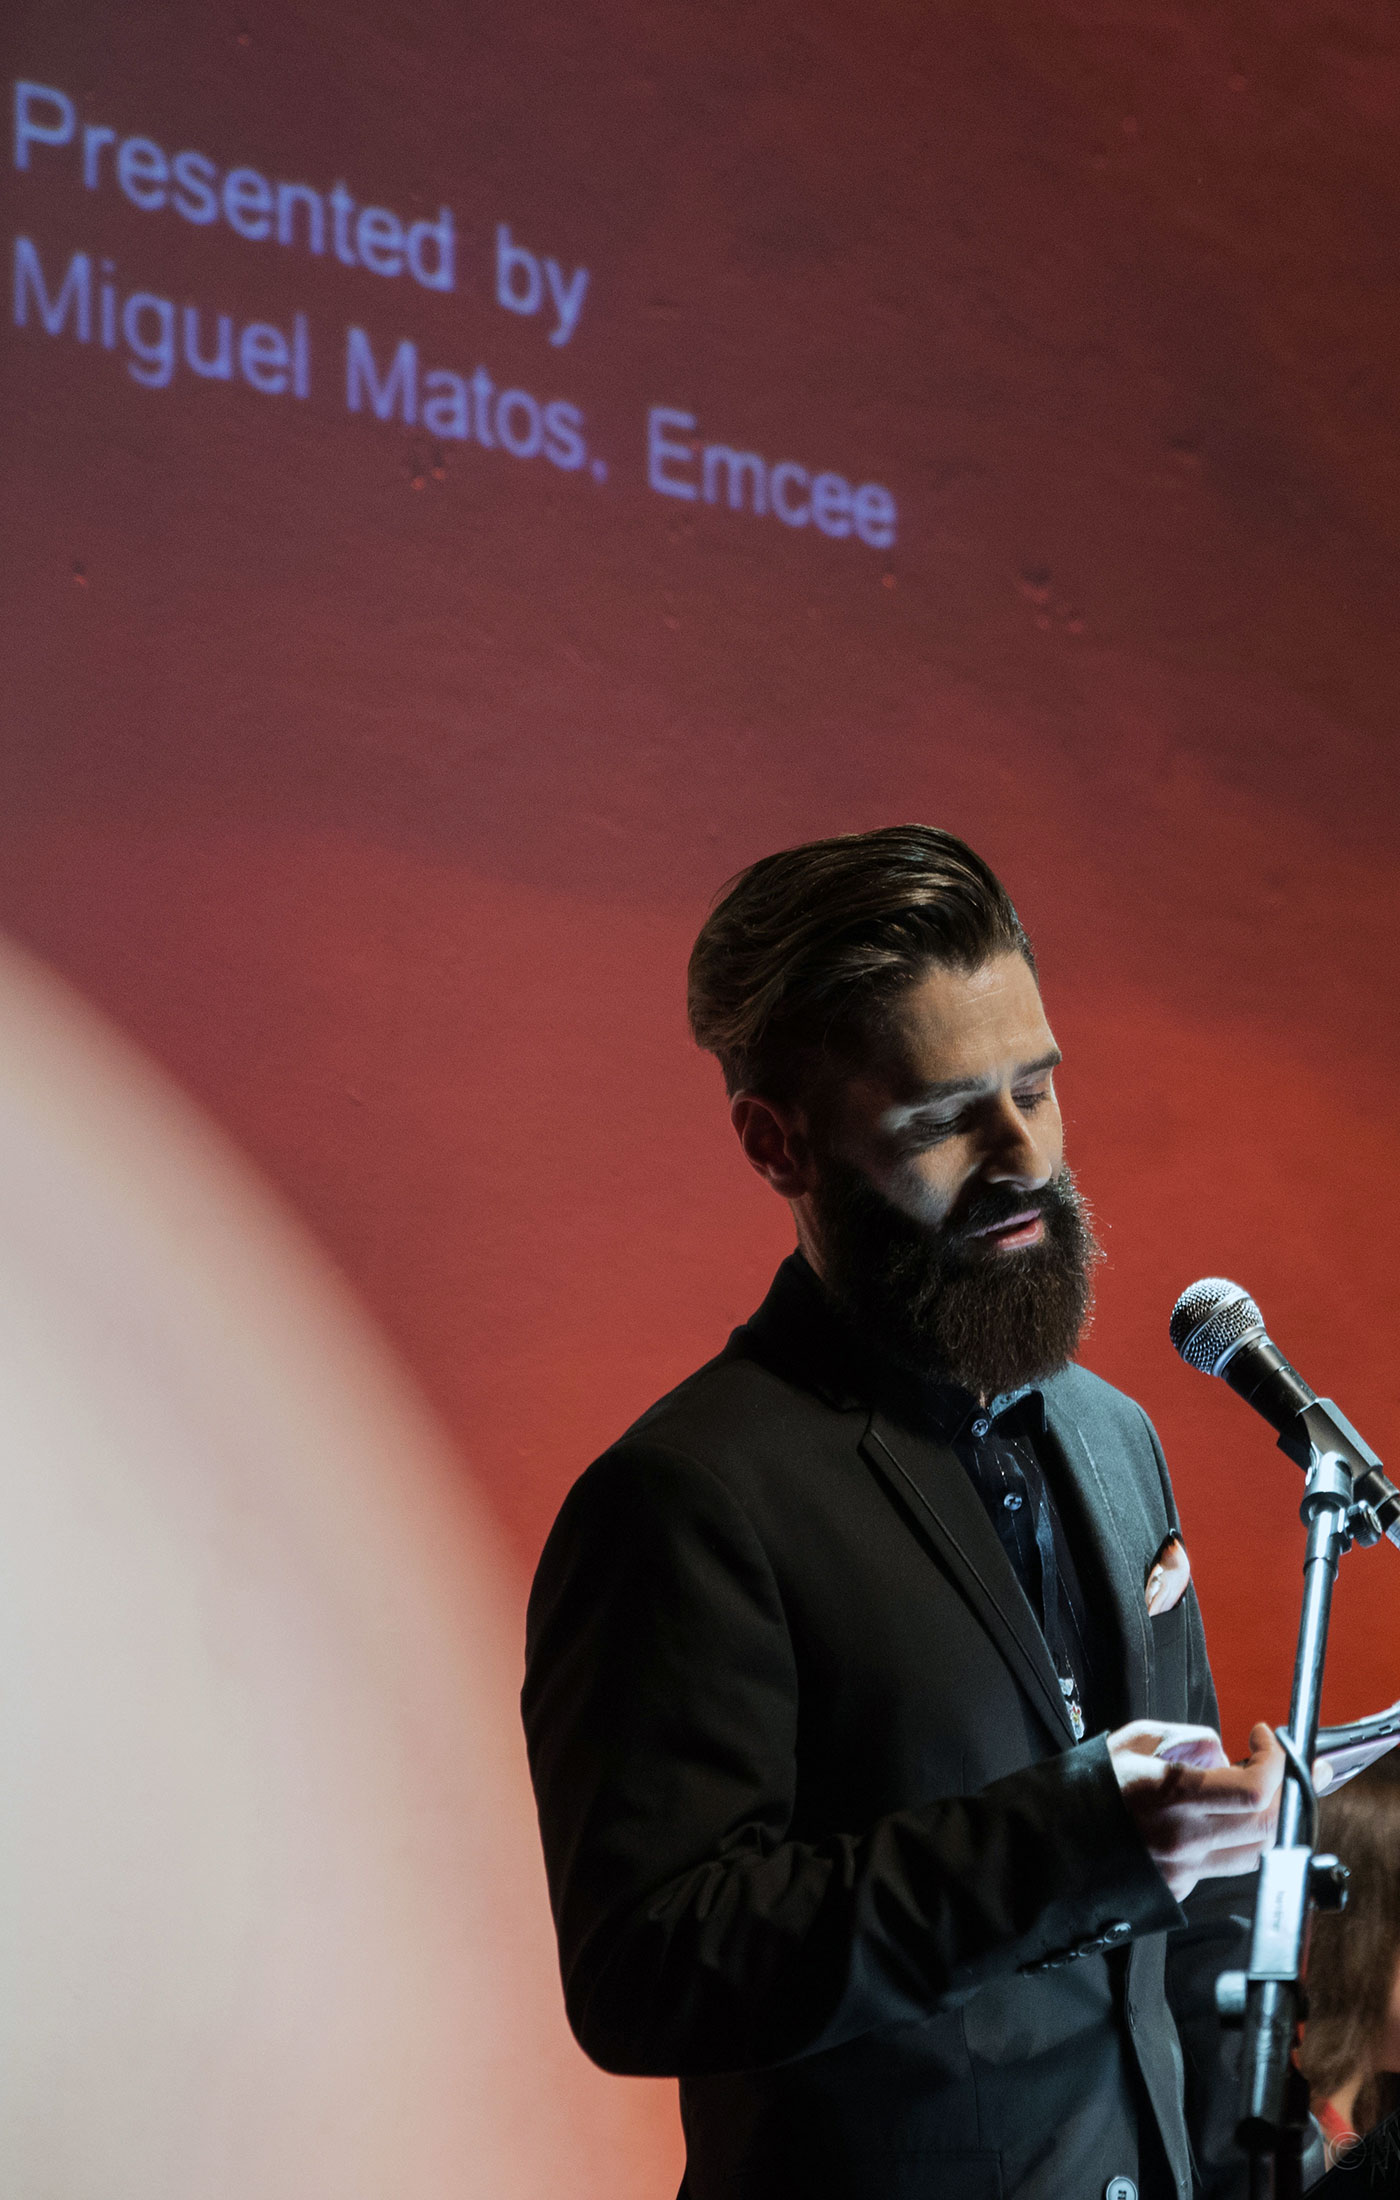 Miguel Matos at The Art and Olfaction Awards, Photo by Marina Chichi